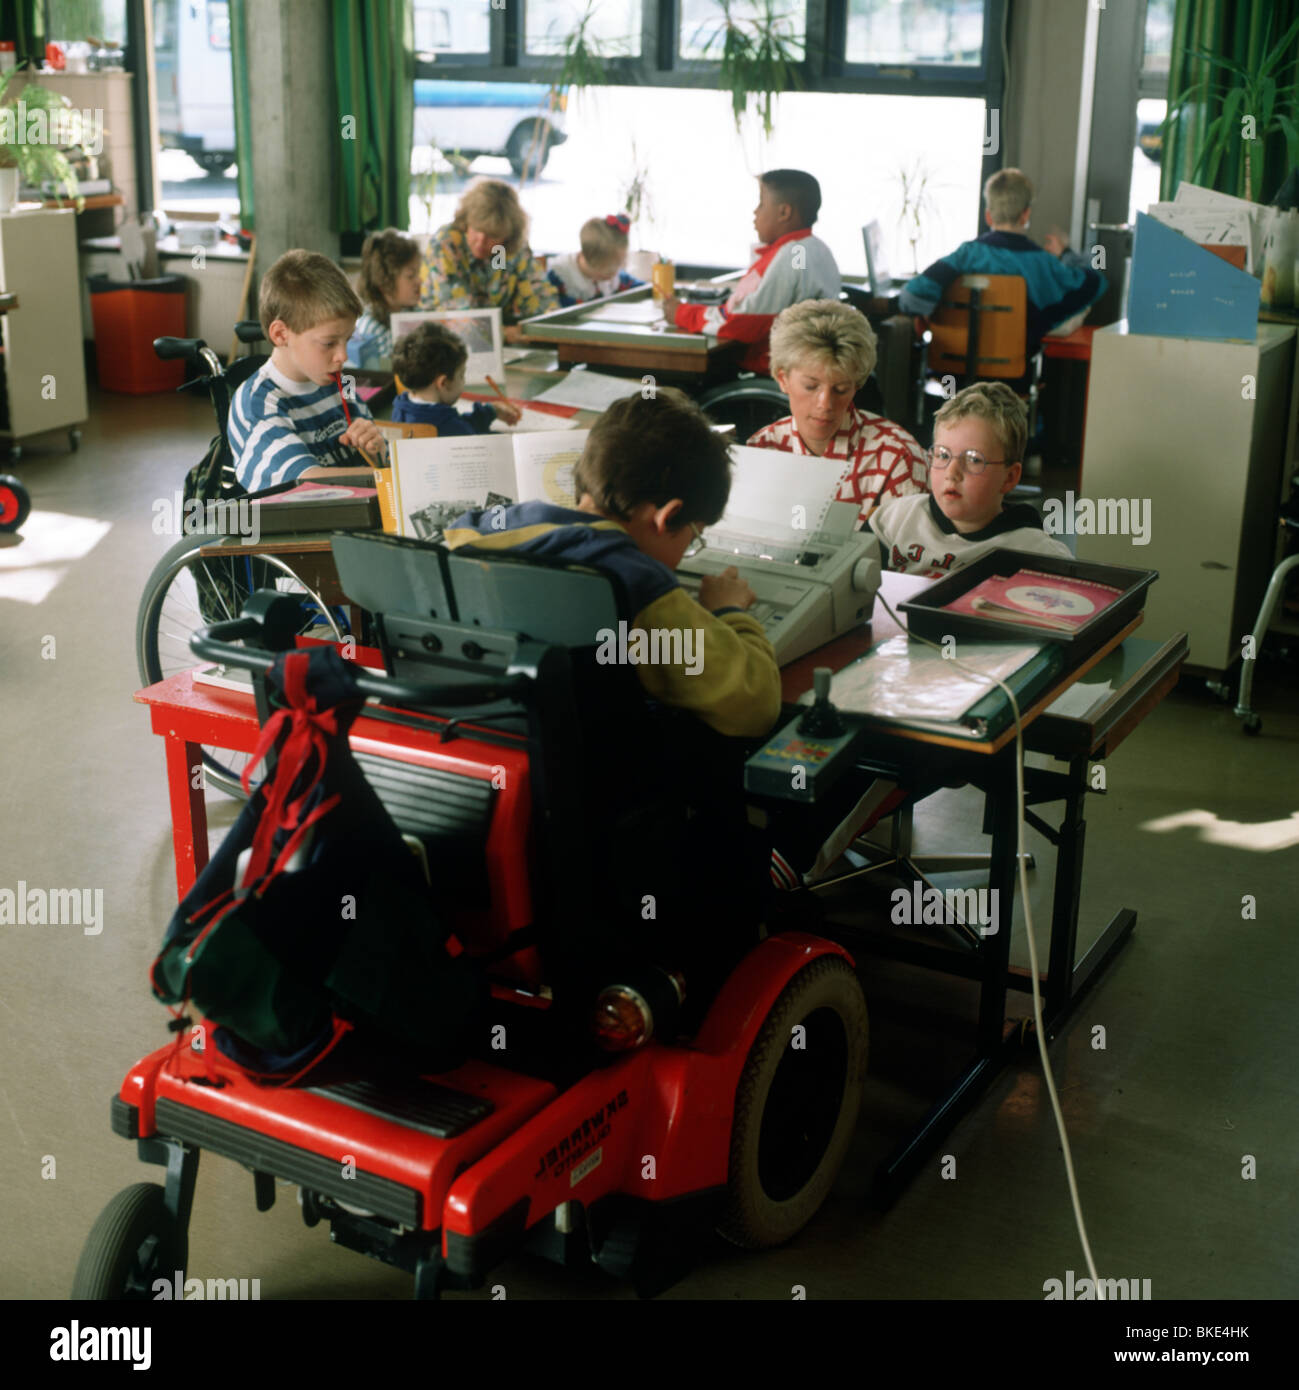 Handicapped children at school - Stock Image